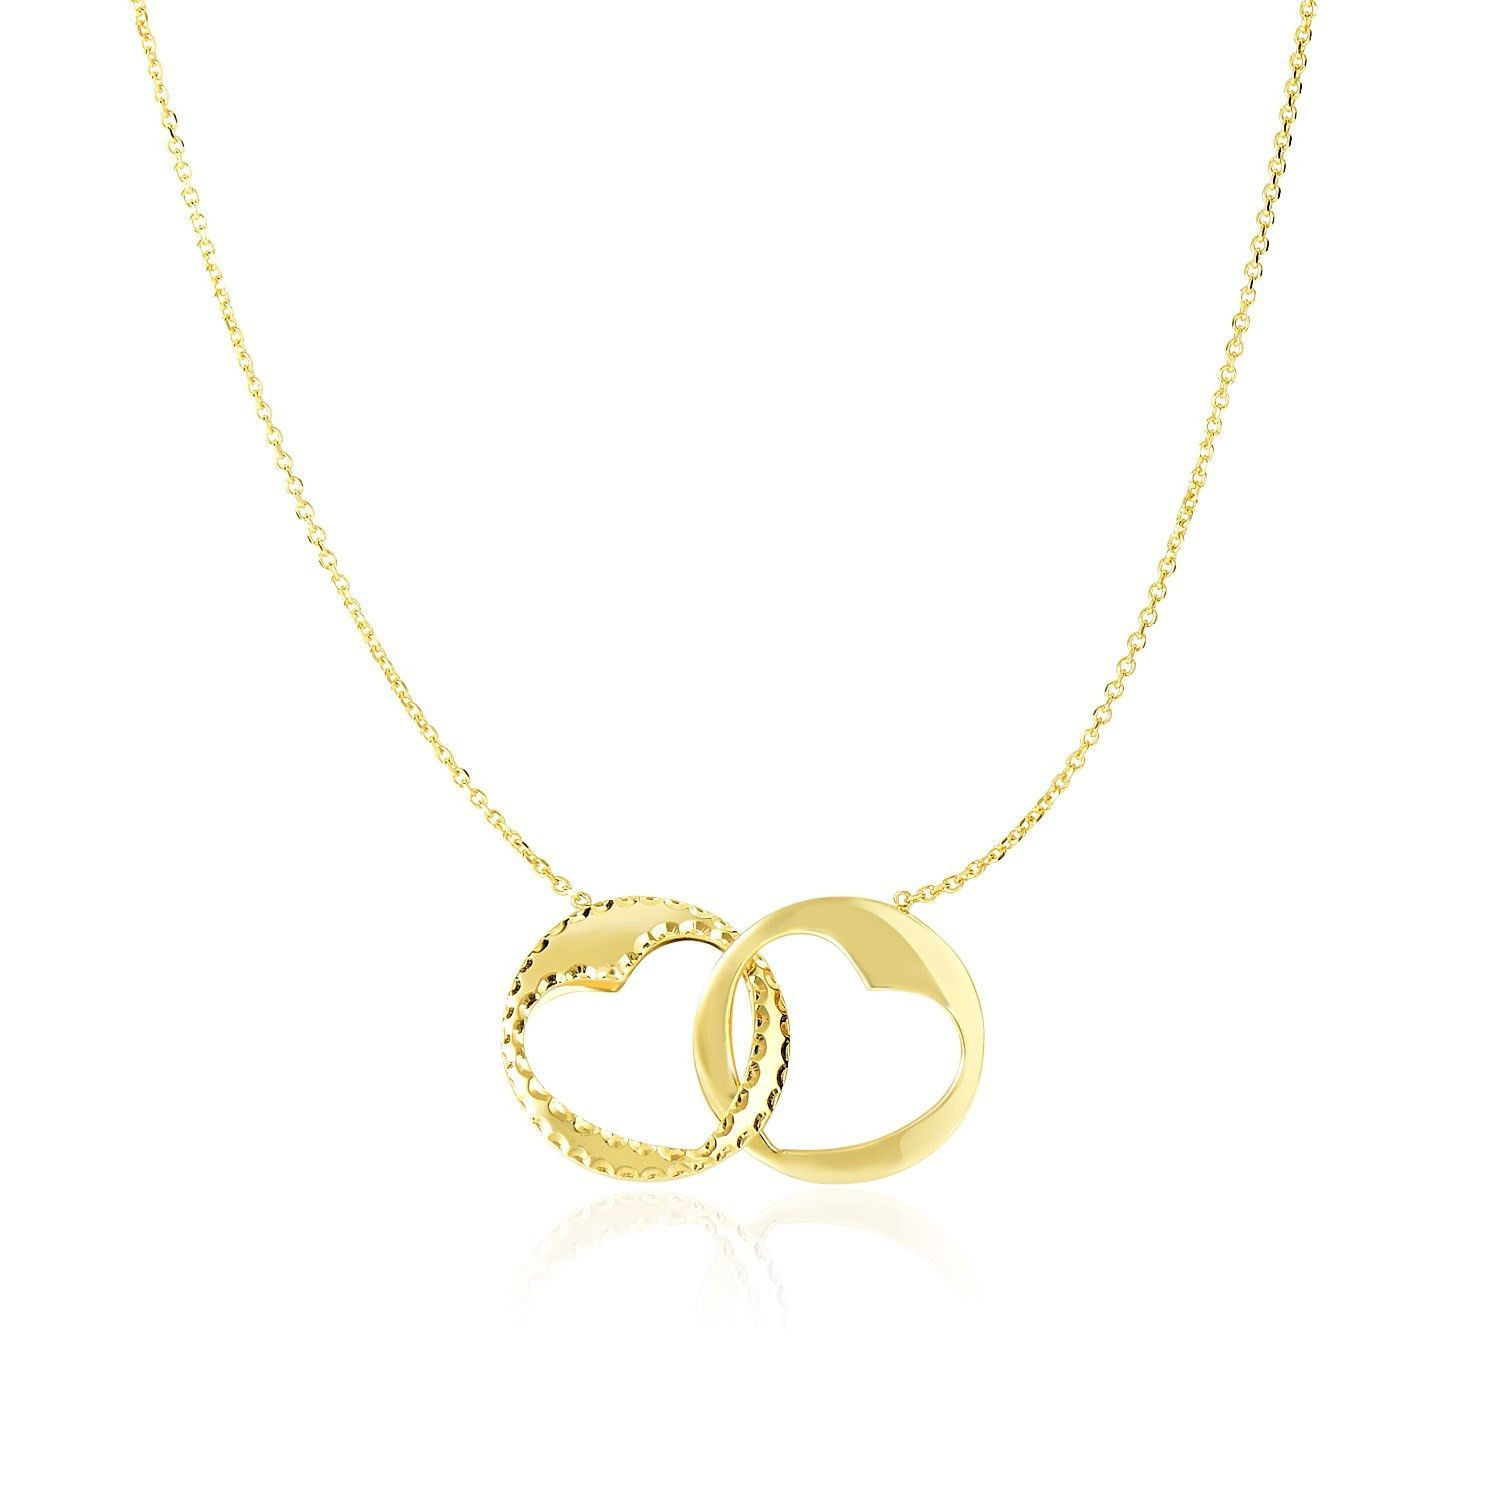 14K Yellow Gold Necklace with Interlaced Heart Design Round Charms